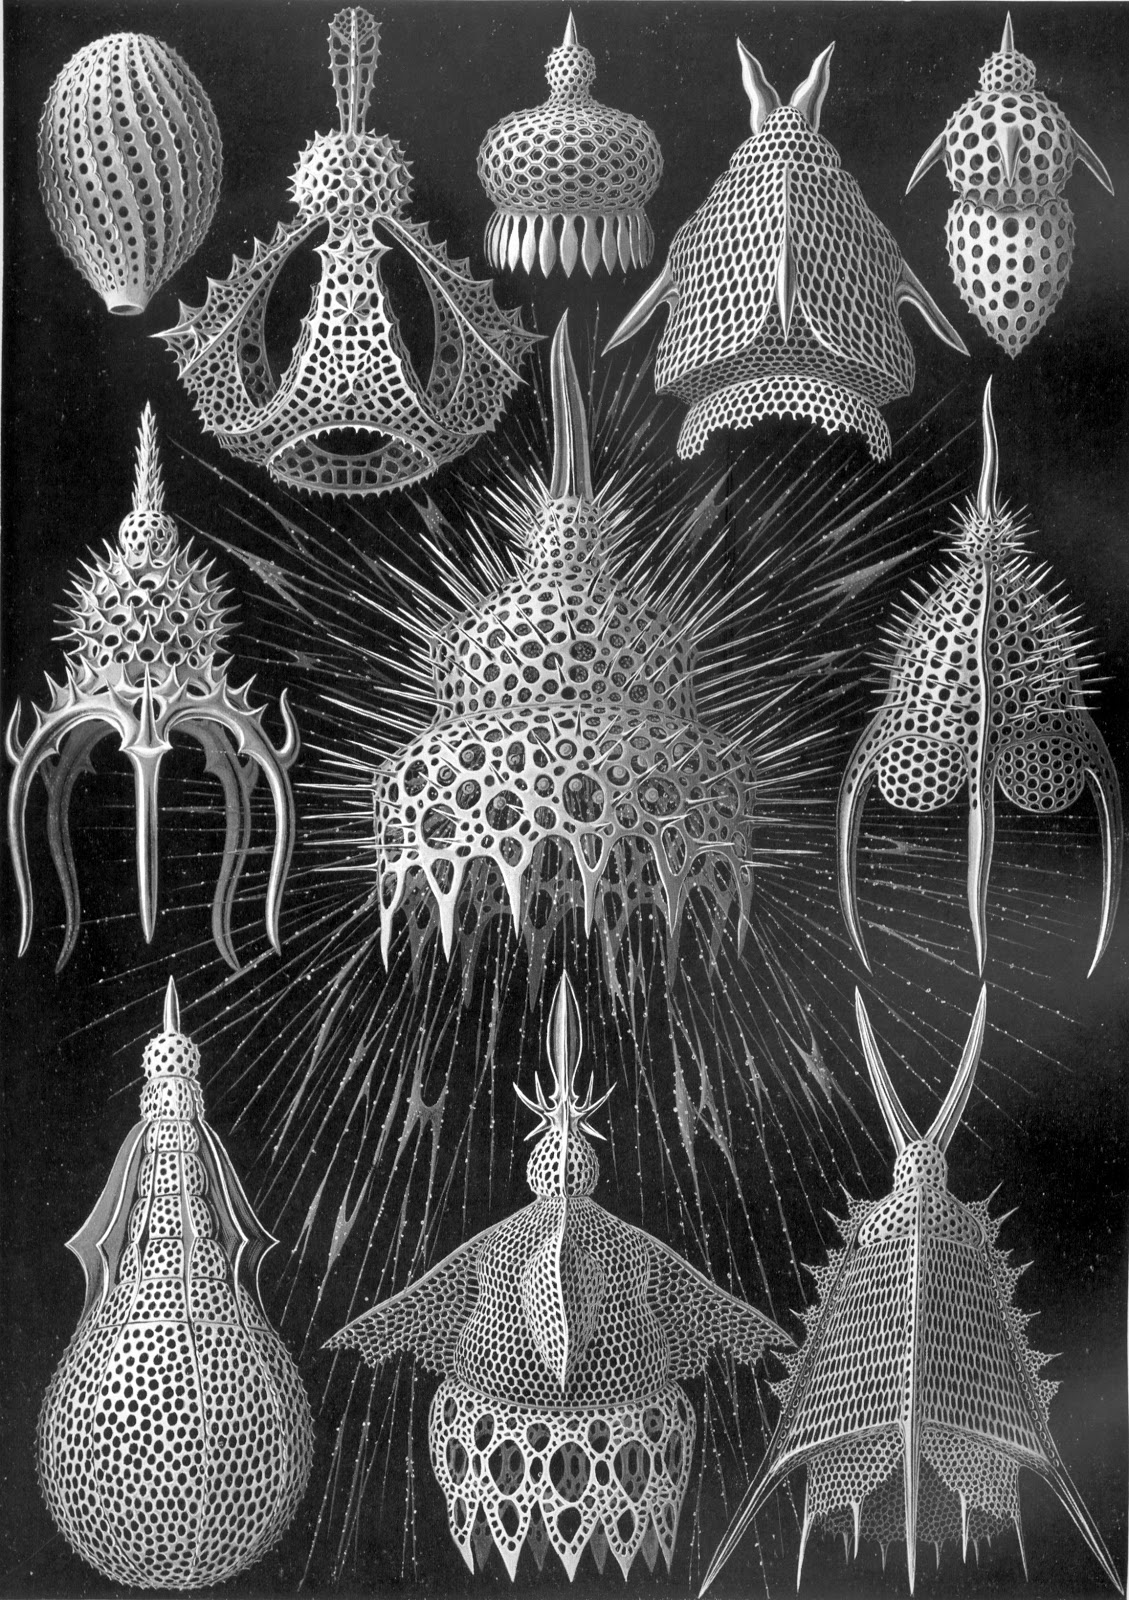 These Creatures Were Beautifully Illustrated By The Victorian Era Biologist Ernst Haeckel In His Kunstformen Der Nature